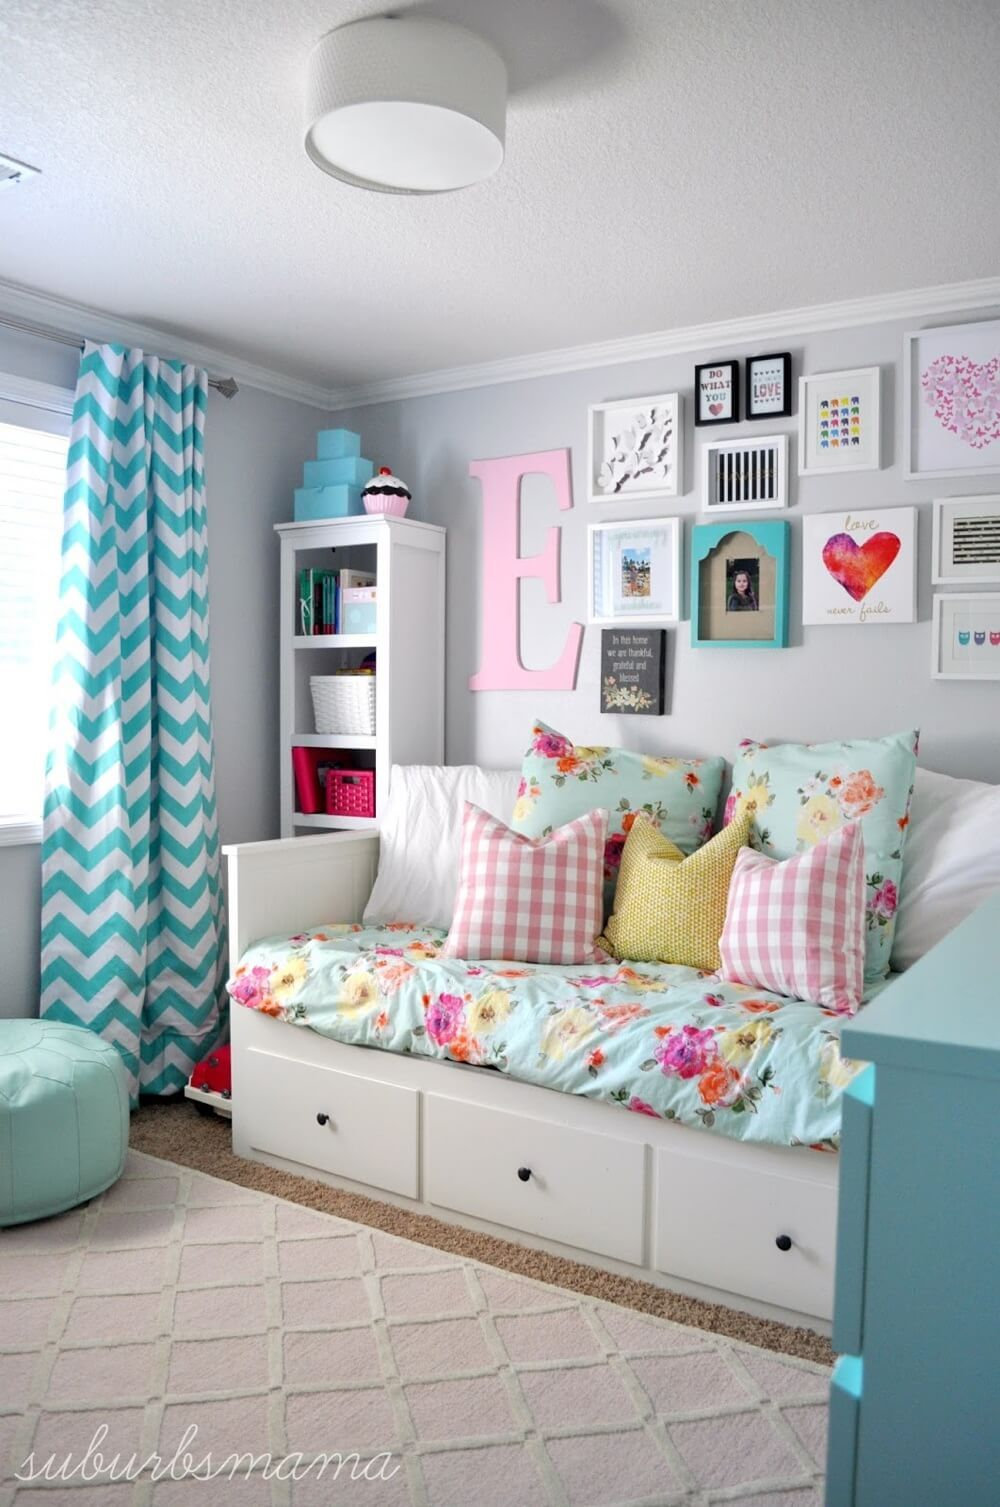 65 Feminine And Fashionable Teenage Girl Bedroom Ideas That Will Blow Your Mind Girl Bedroom Decor Teenage Girl Bedroom Designs Girl Bedroom Designs